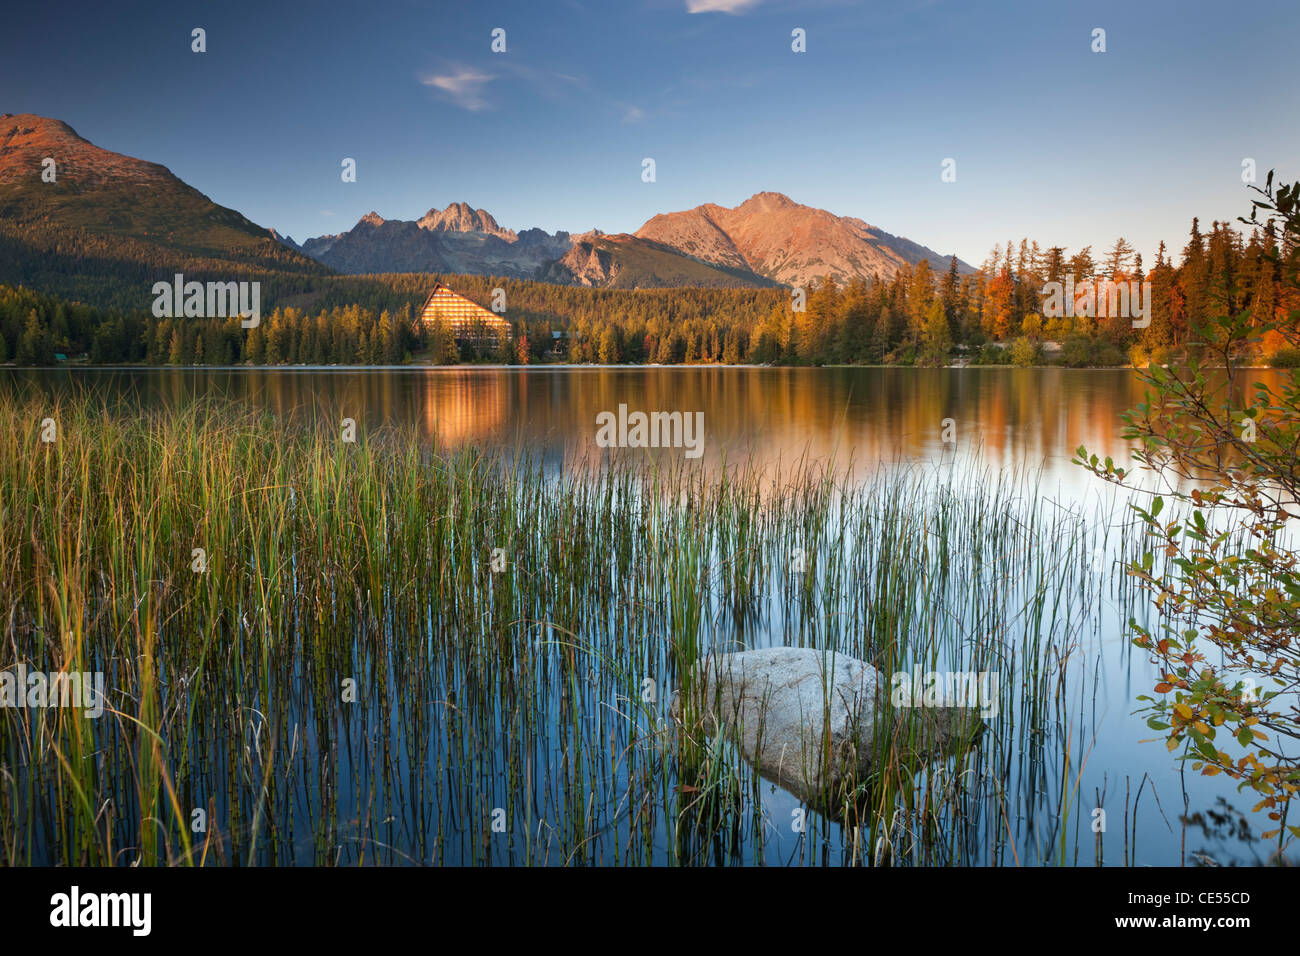 Strbske Pleso Lake in the Tatra Mountains, Slovakia, Europe. Autumn (October) 2011. - Stock Image